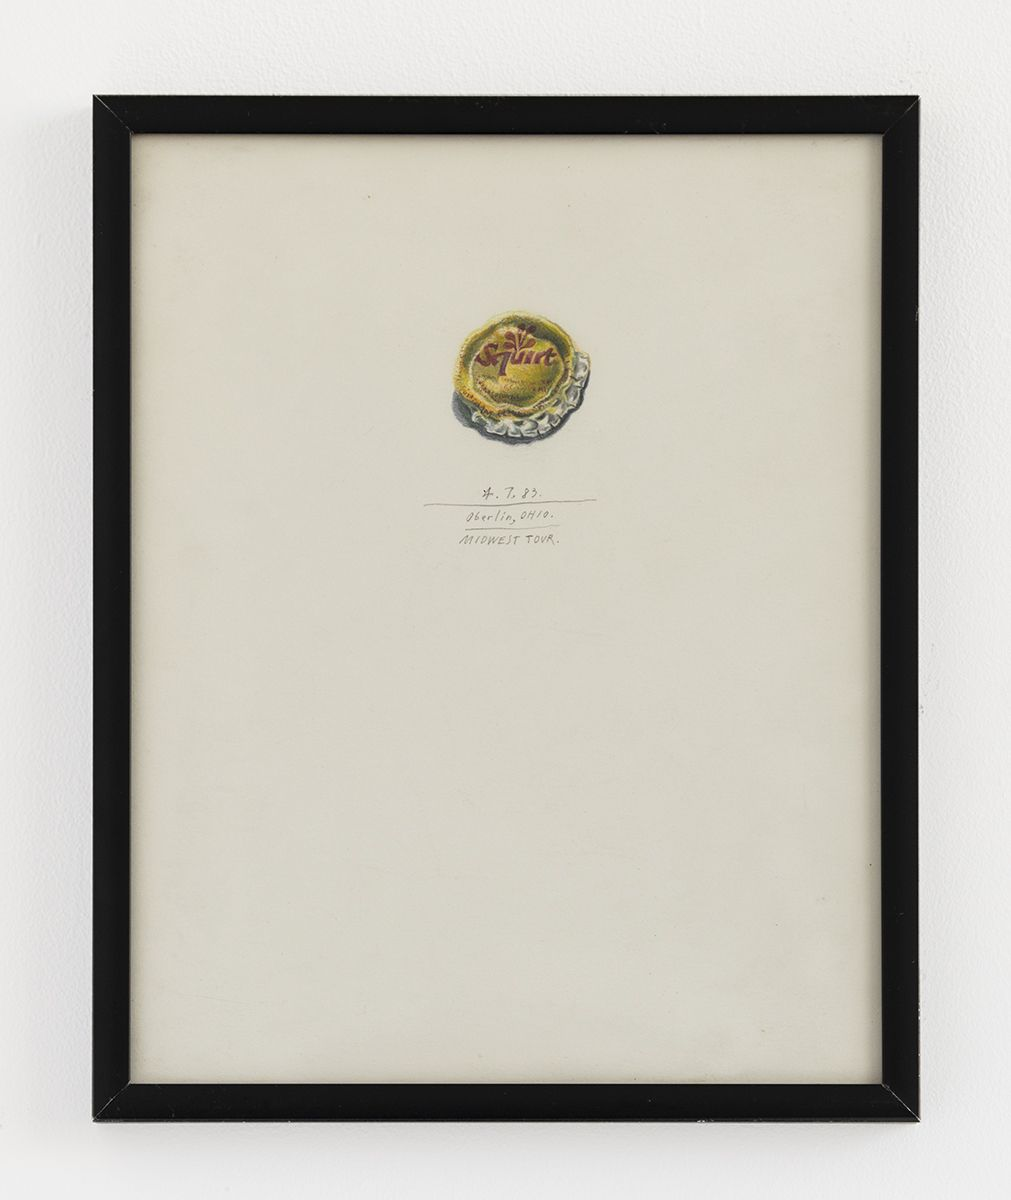 Candy Jernigan,  Oberlin, Ohio, Midwest Tour, 1983,  Colored pencil on paper,  Image: 10 x 8 inches (25.4 x 20.3 cm),  Frame: 10 1/2 x 8 1/2 x 3/4 inches (26.7 x 21.6 x 1.9 cm)